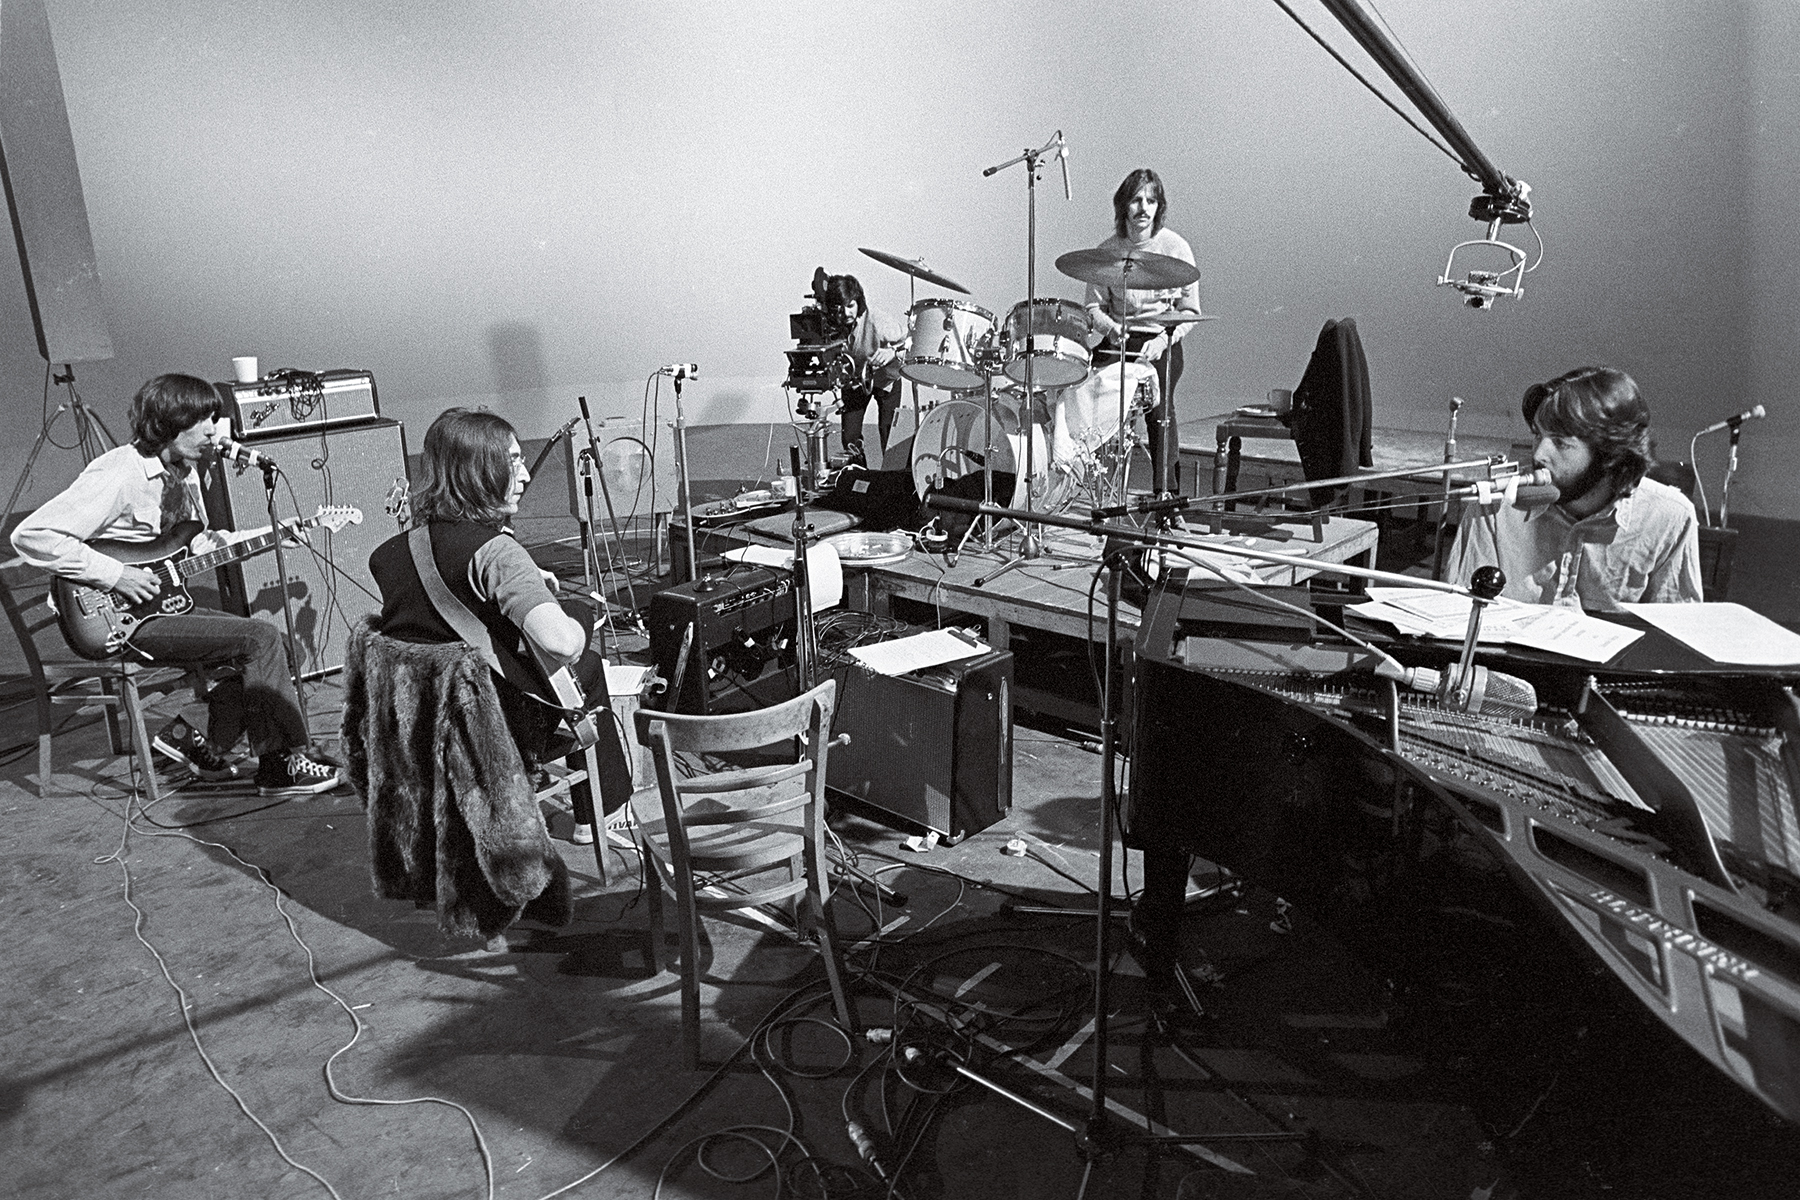 UNFRIENDLY CONFINES: The Beatles playing on camera for the Get Back project. They were stuck in Twickenham Film Studio rather than the more familiar — and comfortable — Abbey Road.